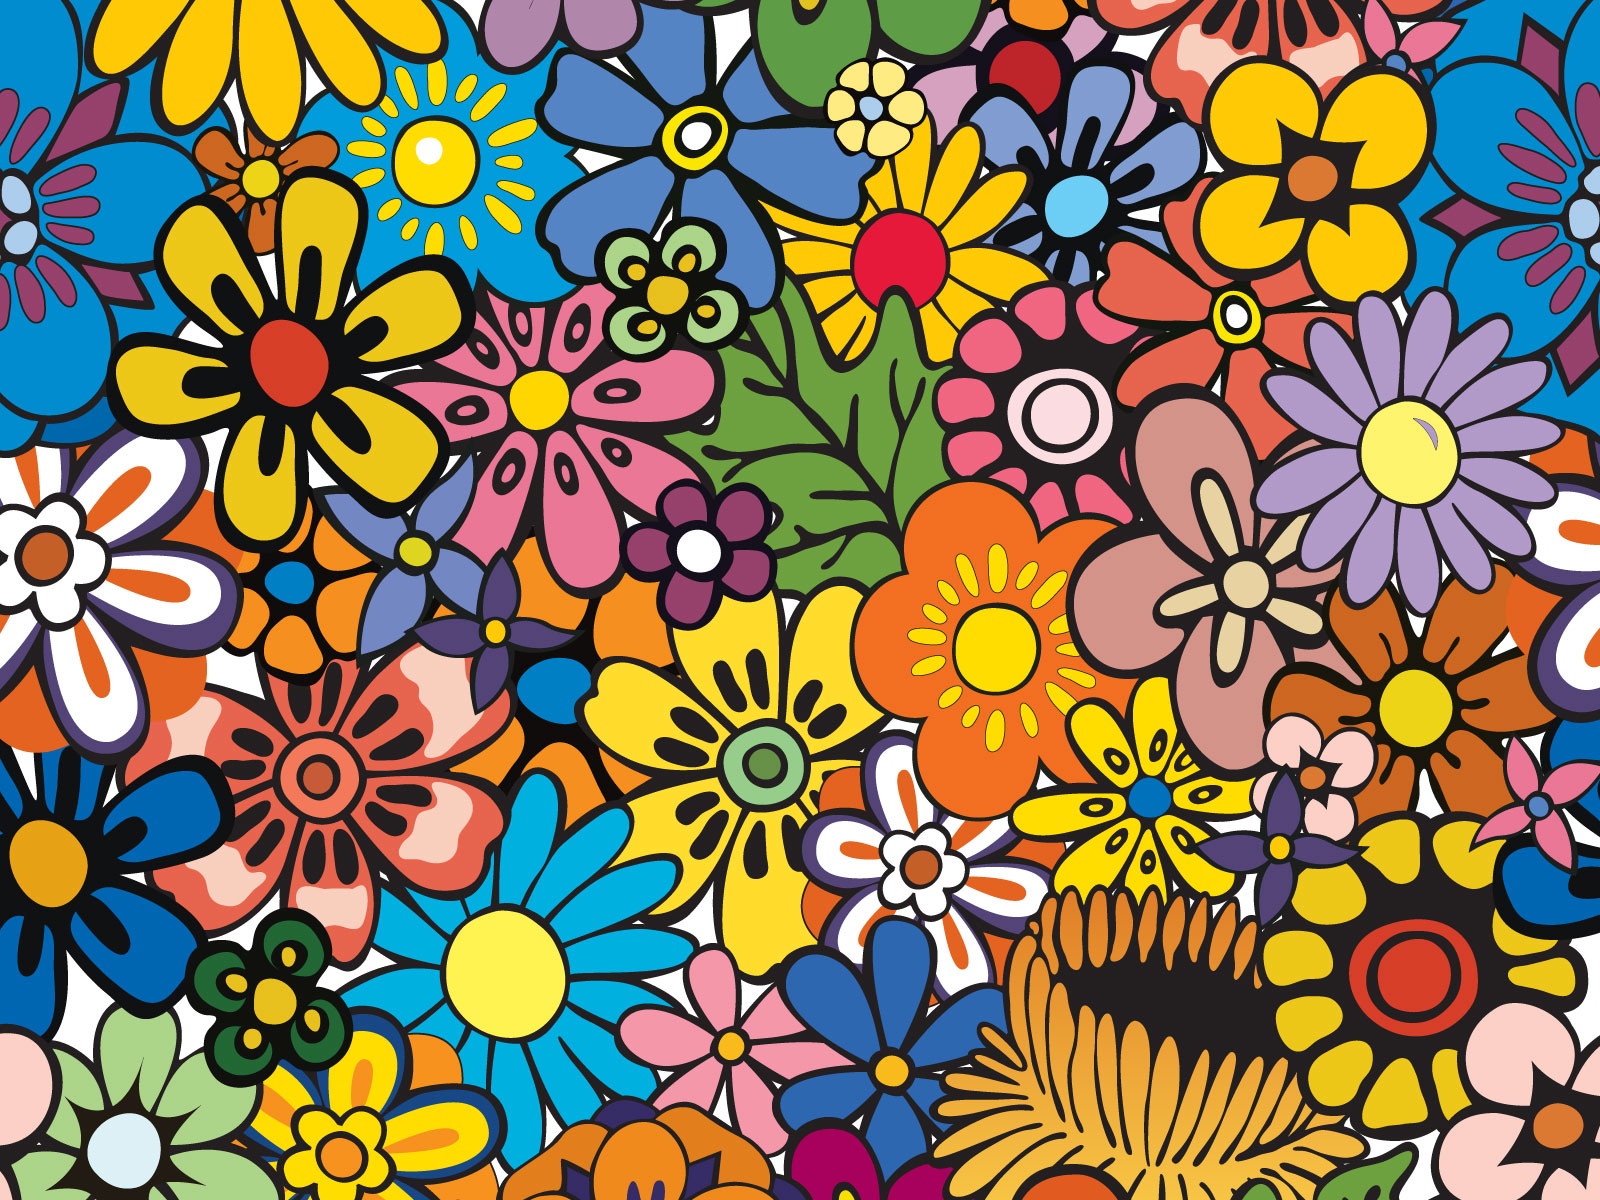 Free 10 tasty twitter backgrounds sitepoint a flowery twitter background from allan mcgregor voltagebd Image collections